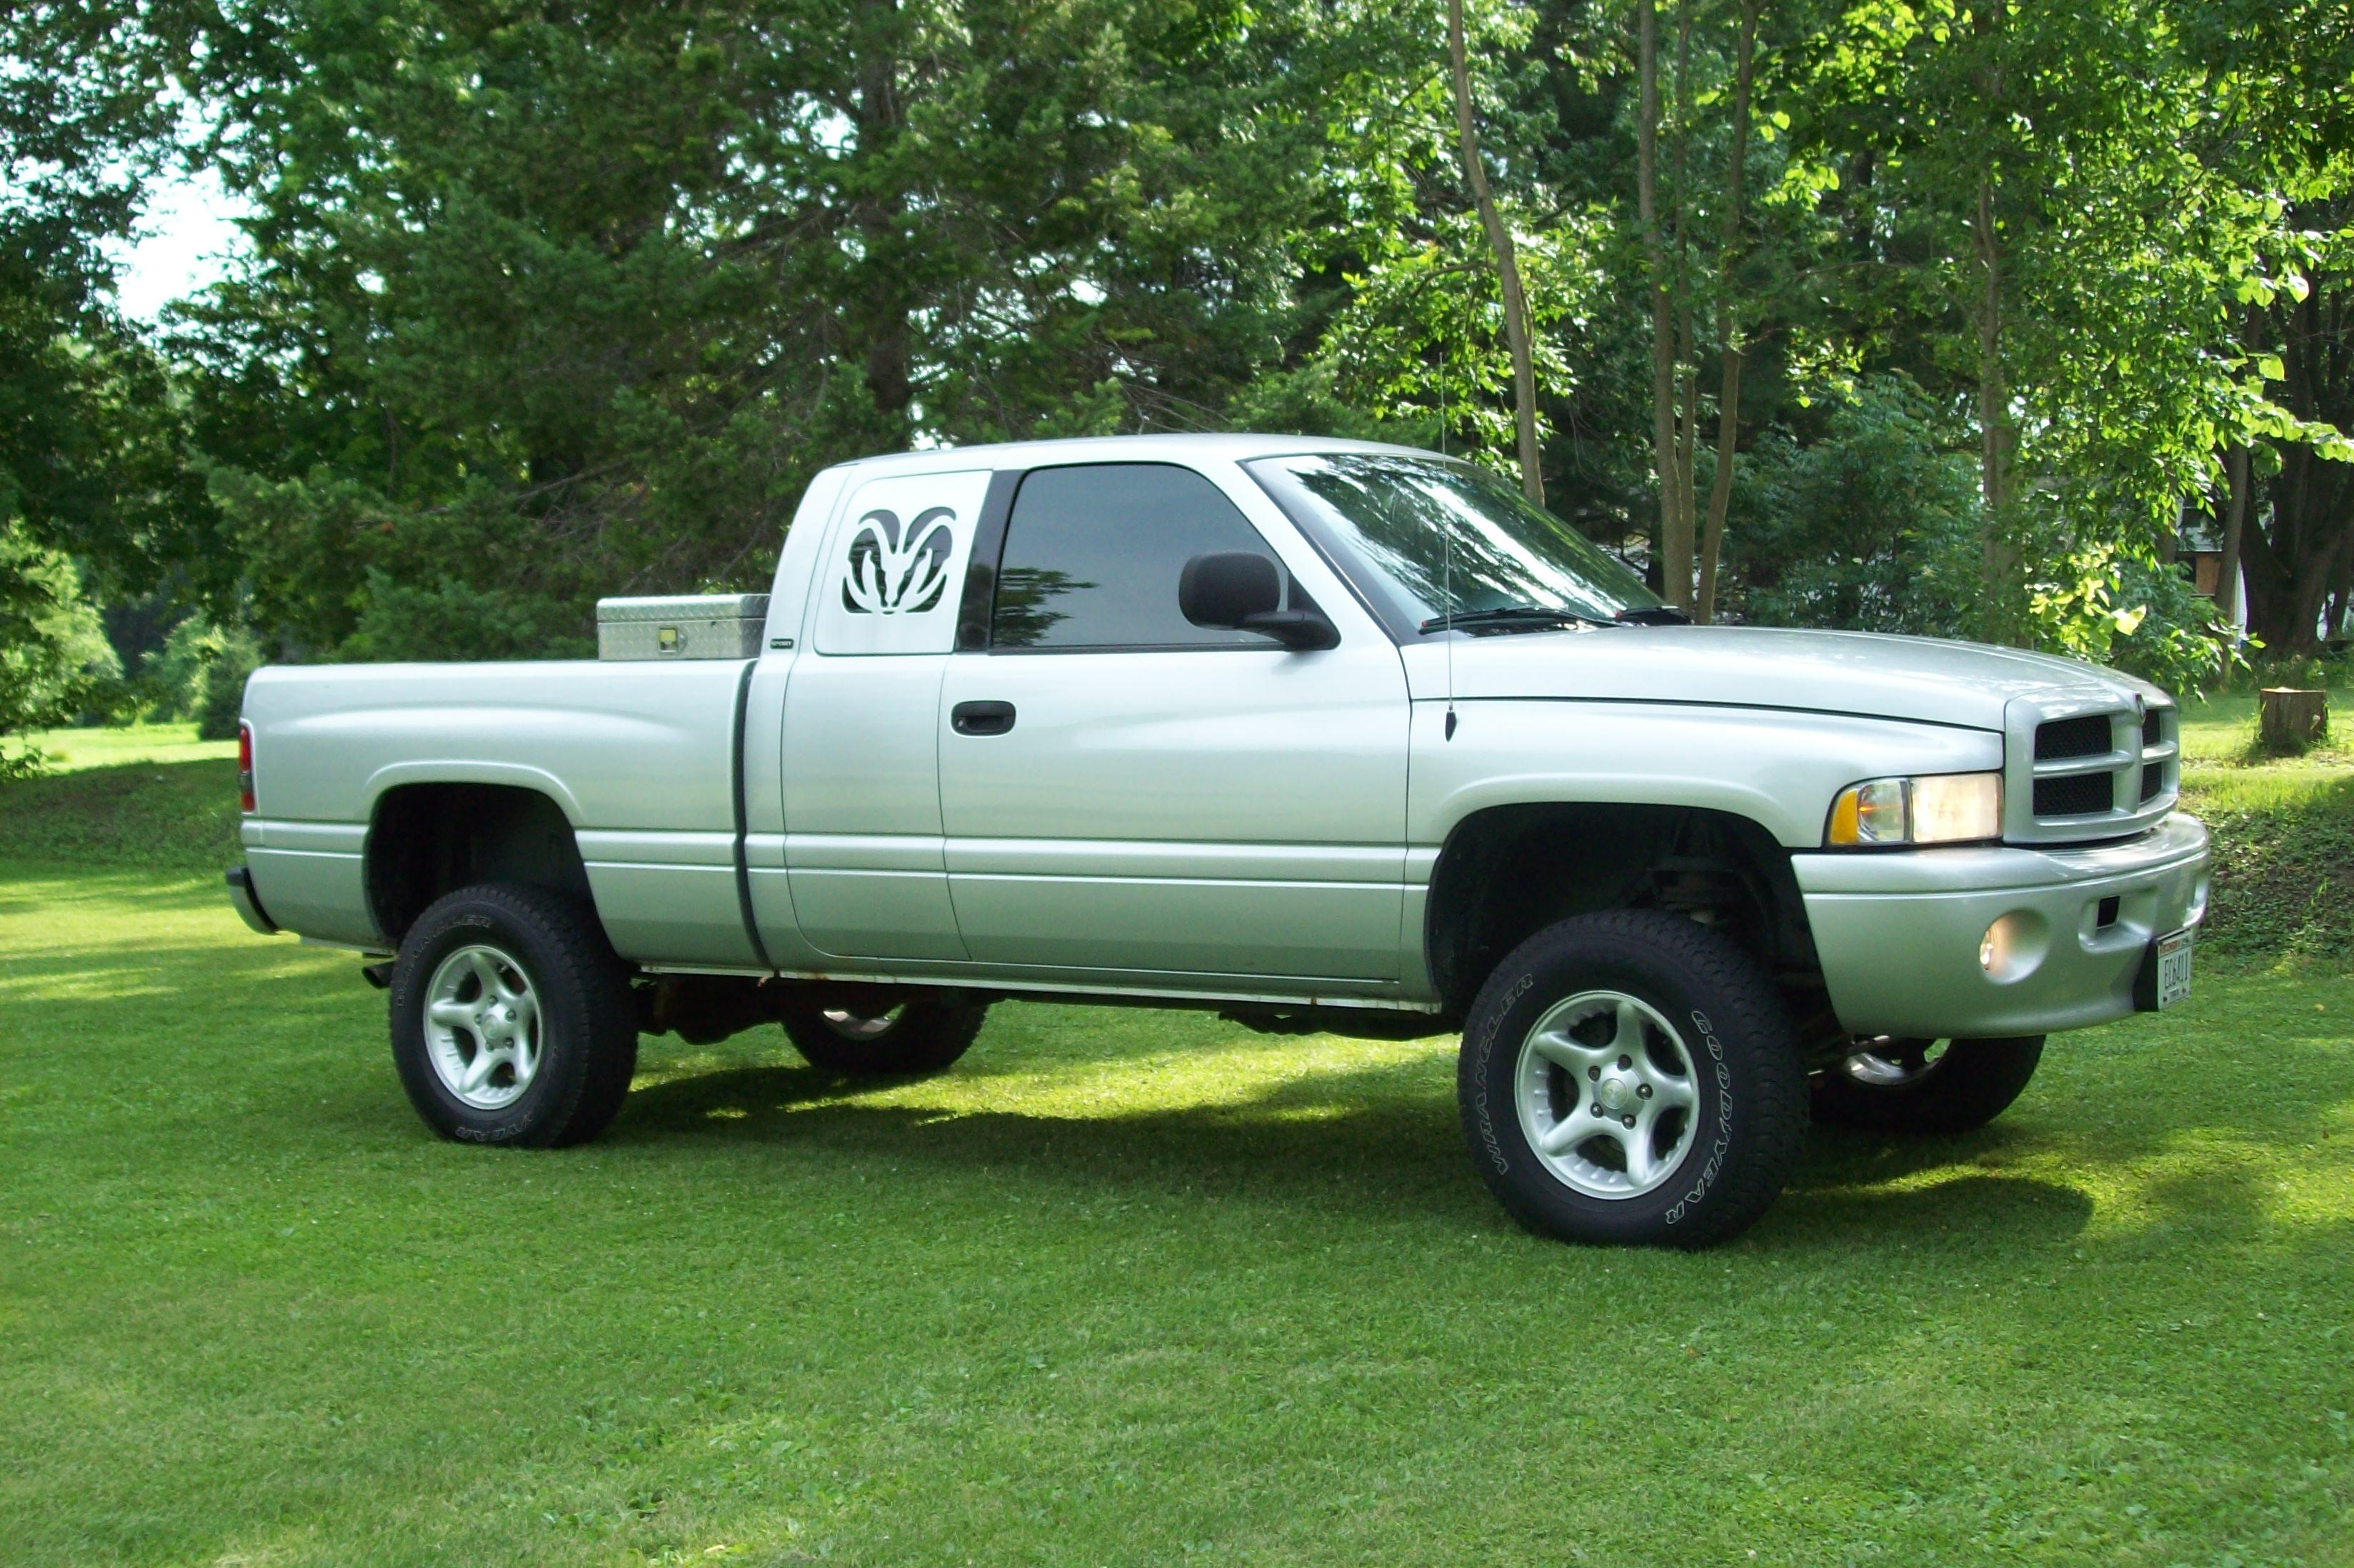 hight resolution of 84coltgtsturbo 2001 dodge ram 1500 quad cab